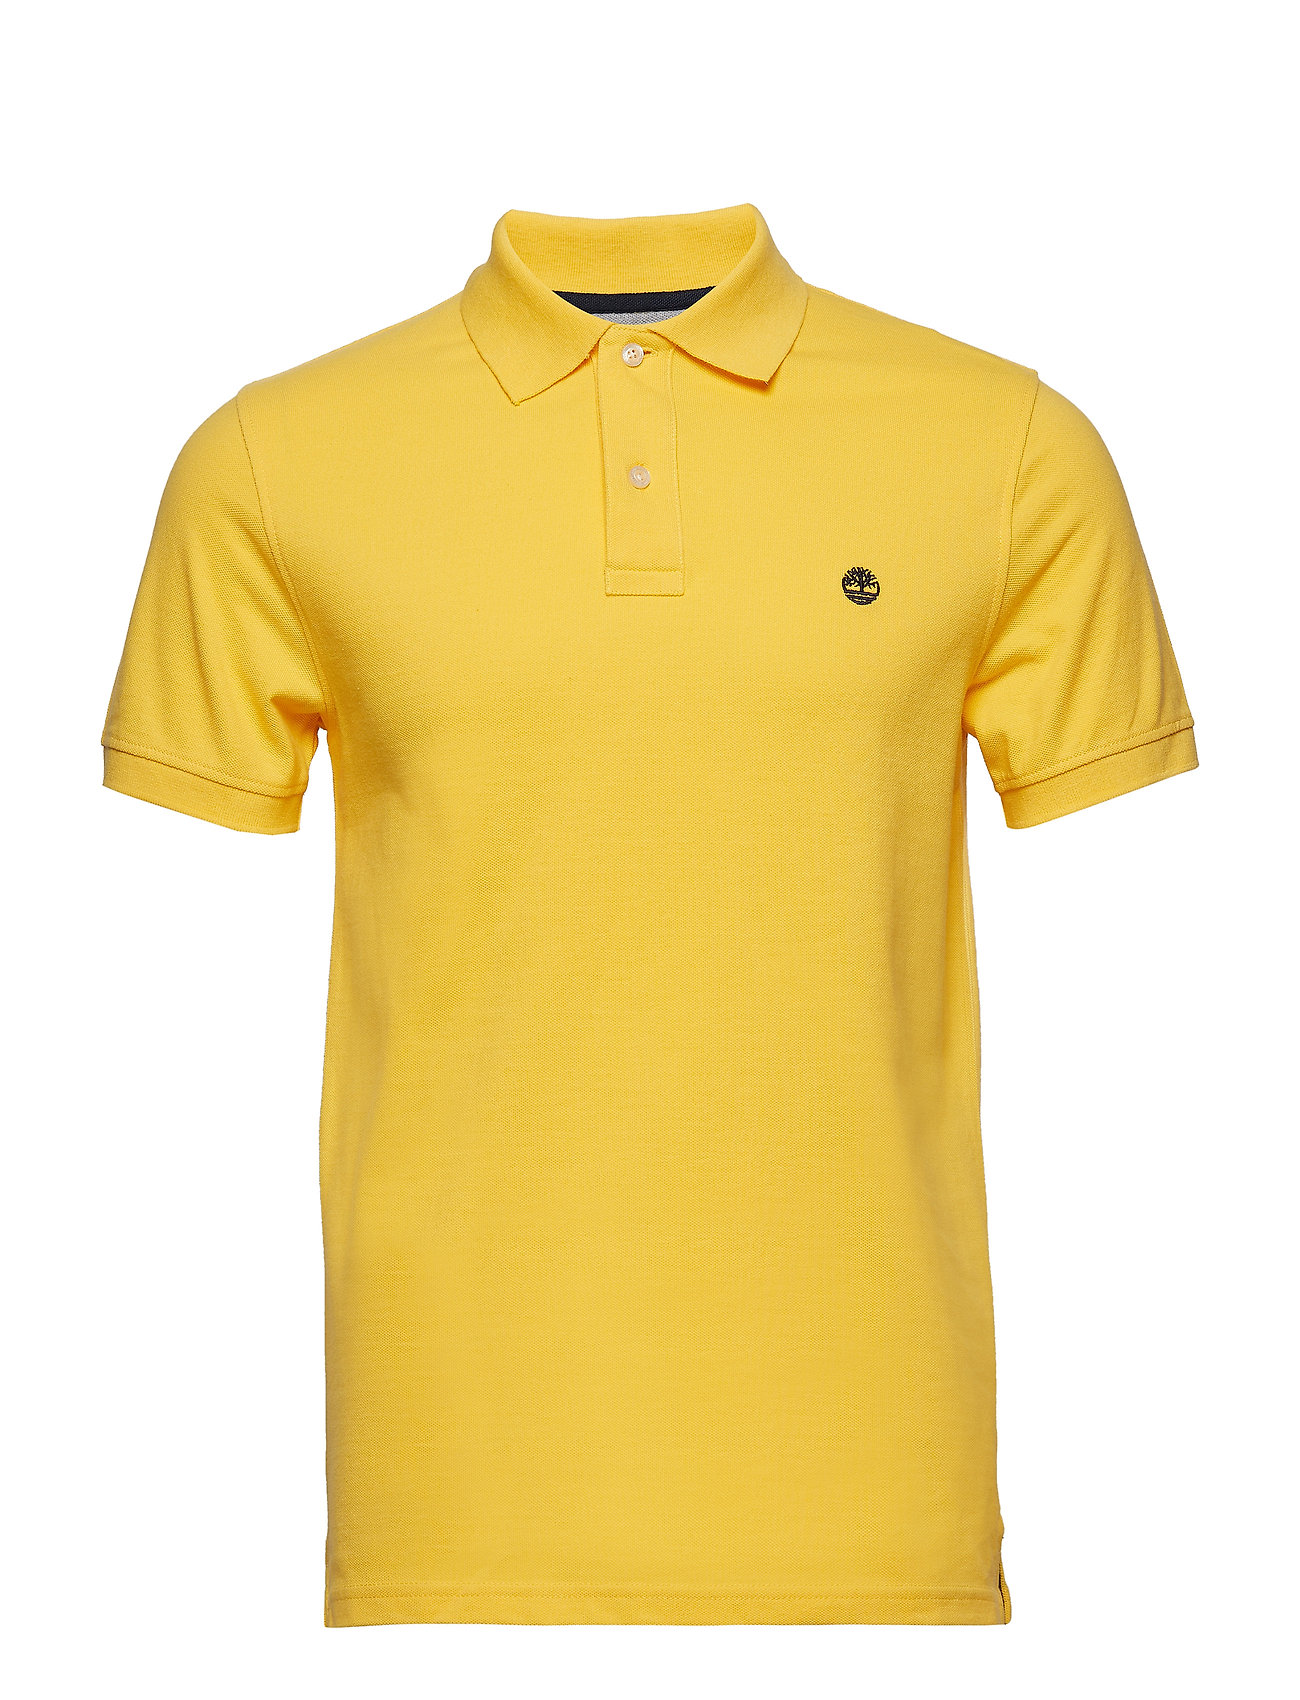 Timberland SS Millers River Pique Slim Polo - HABANERO GOLD